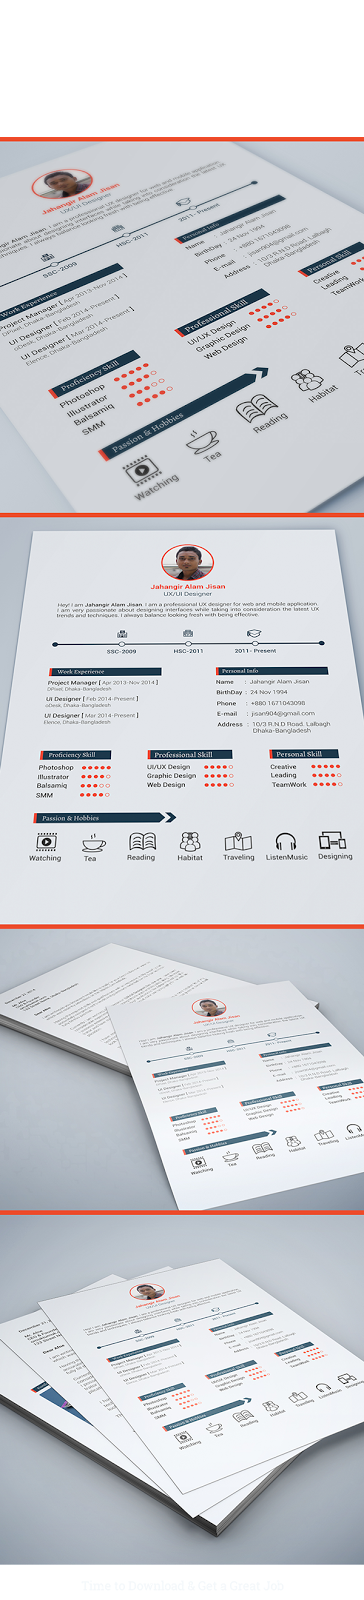 Free 3 Page Resume PSD Template